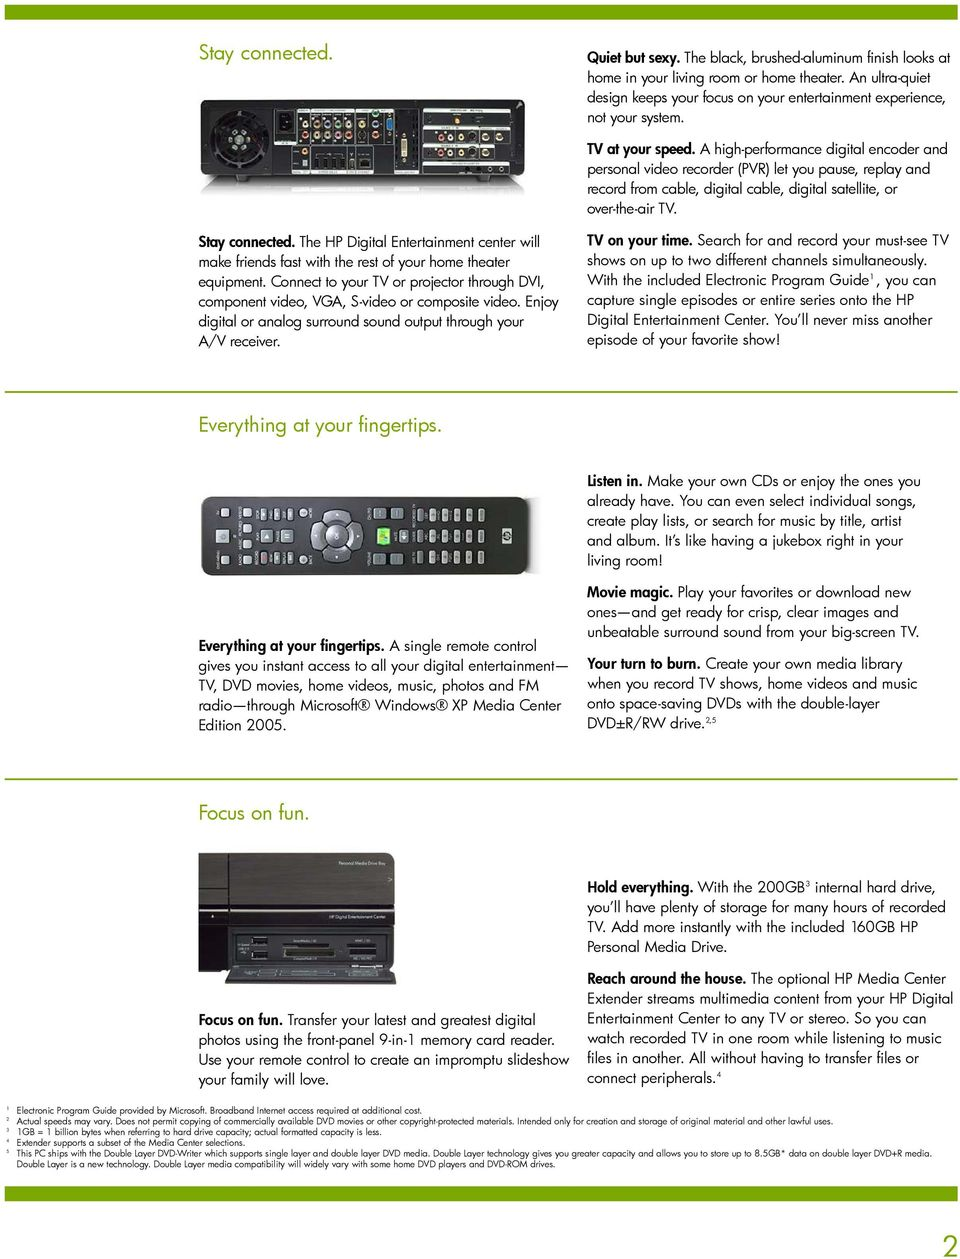 A high-performance digital encoder and personal video recorder (PVR) let you pause, replay and record from cable, digital cable, digital satellite, or over-the-air TV. Stay connected.